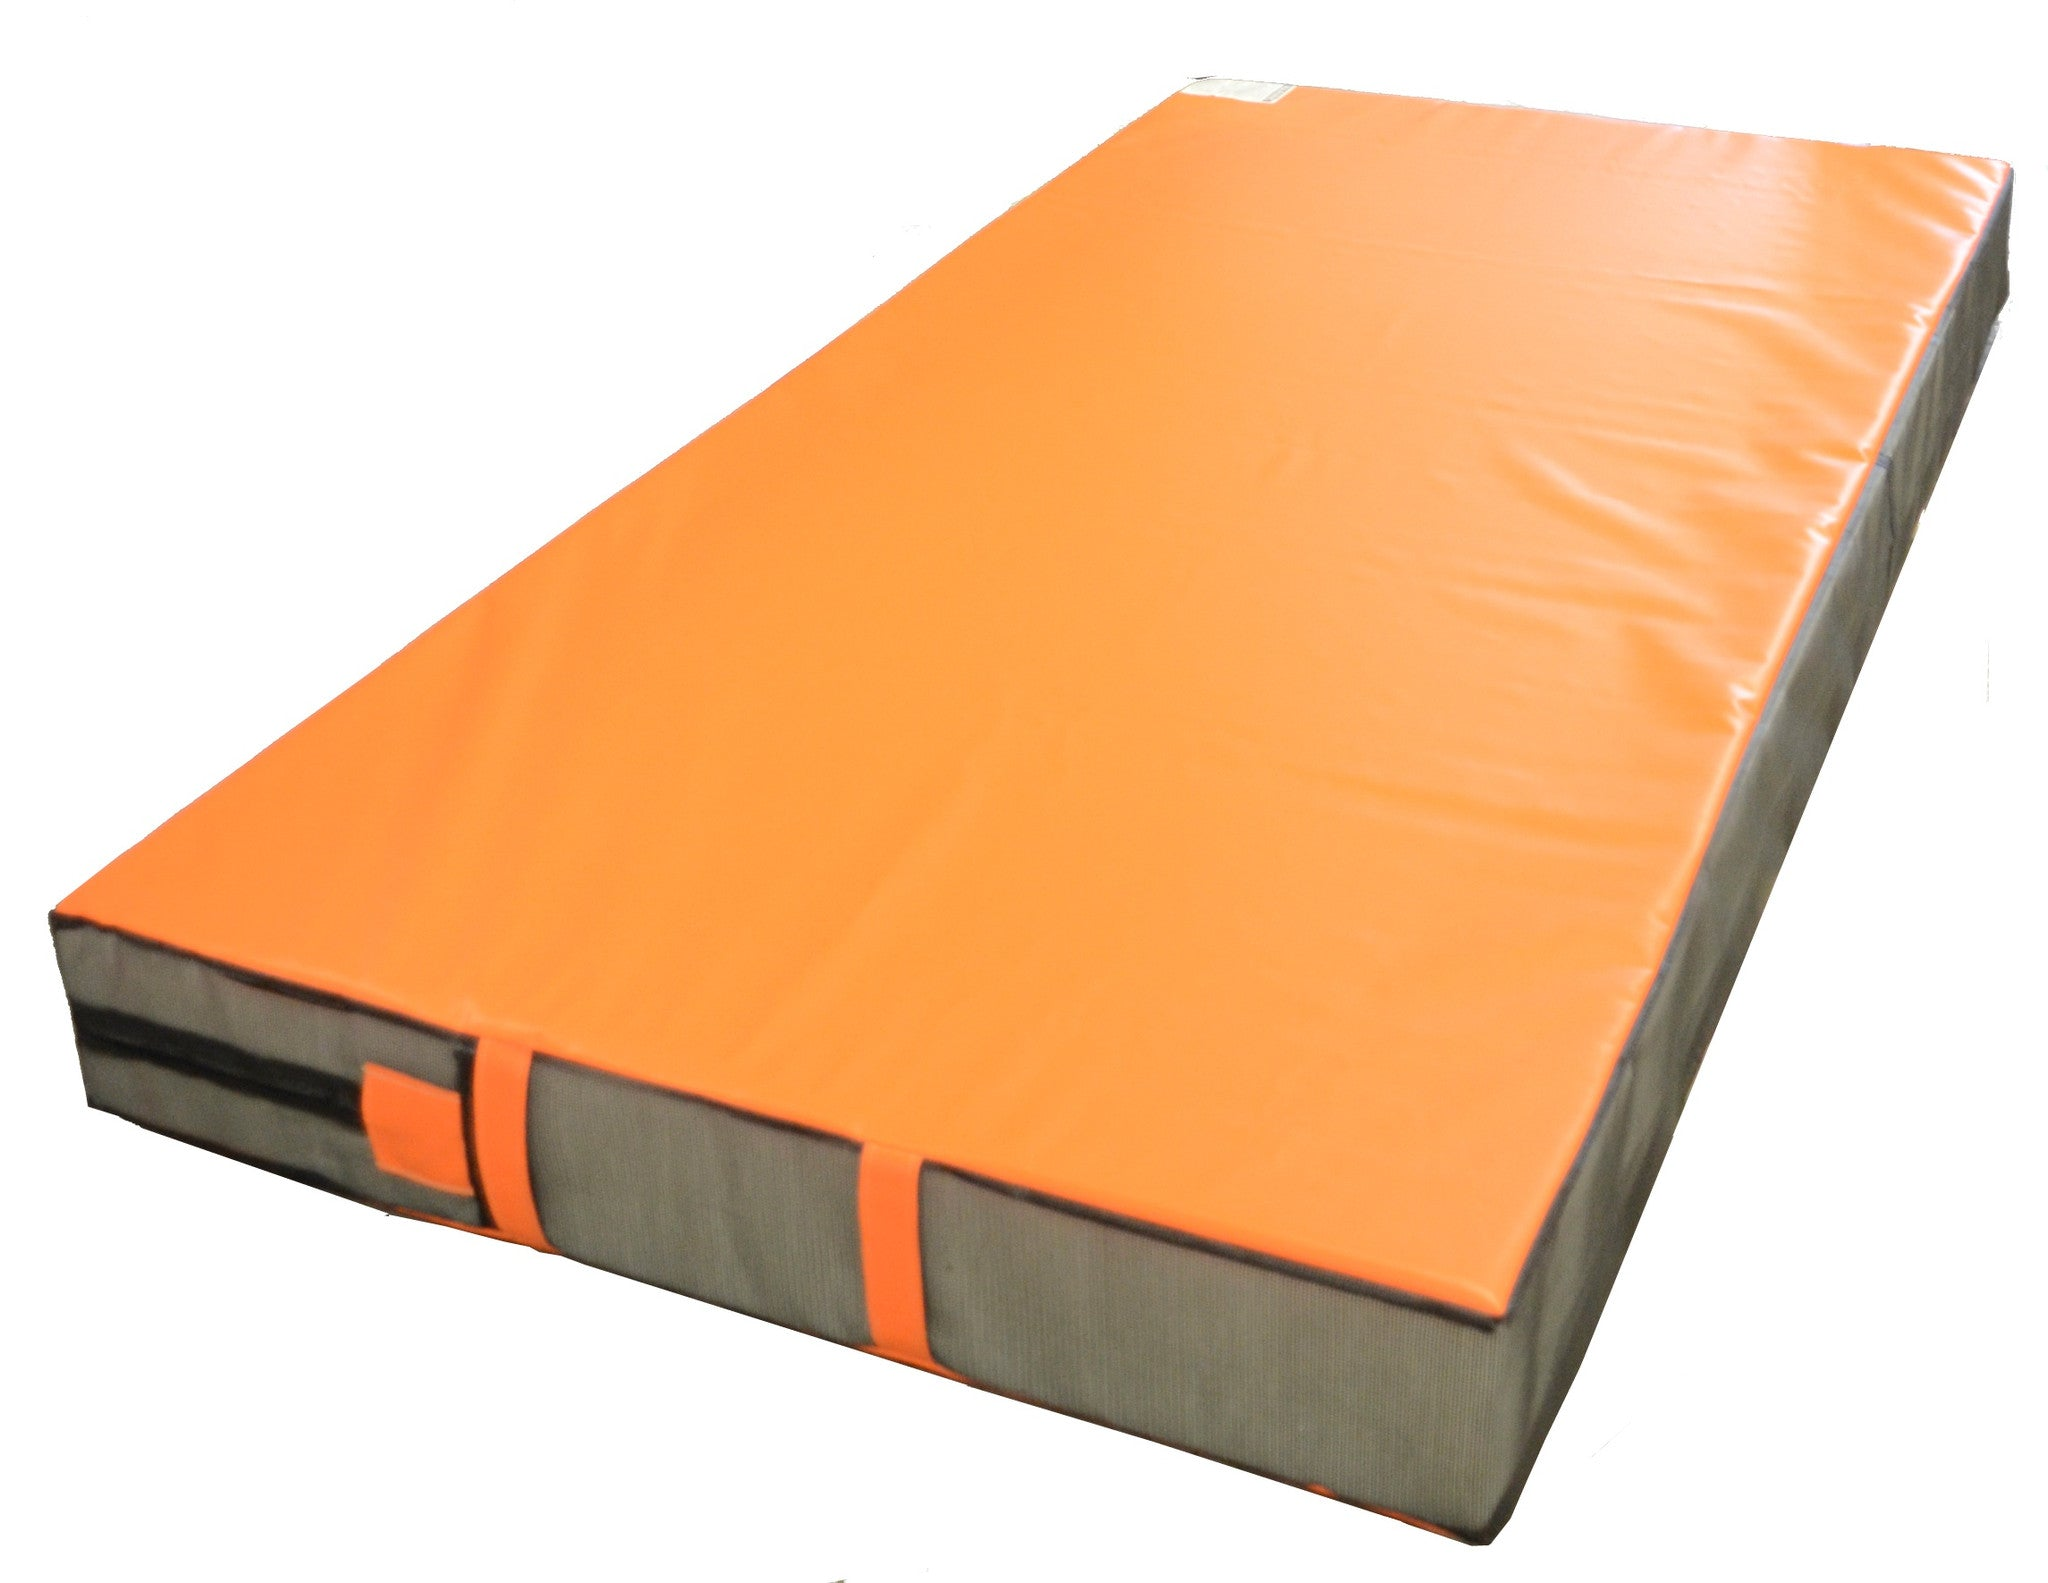 AK Athletic orange gymnastics landing mat